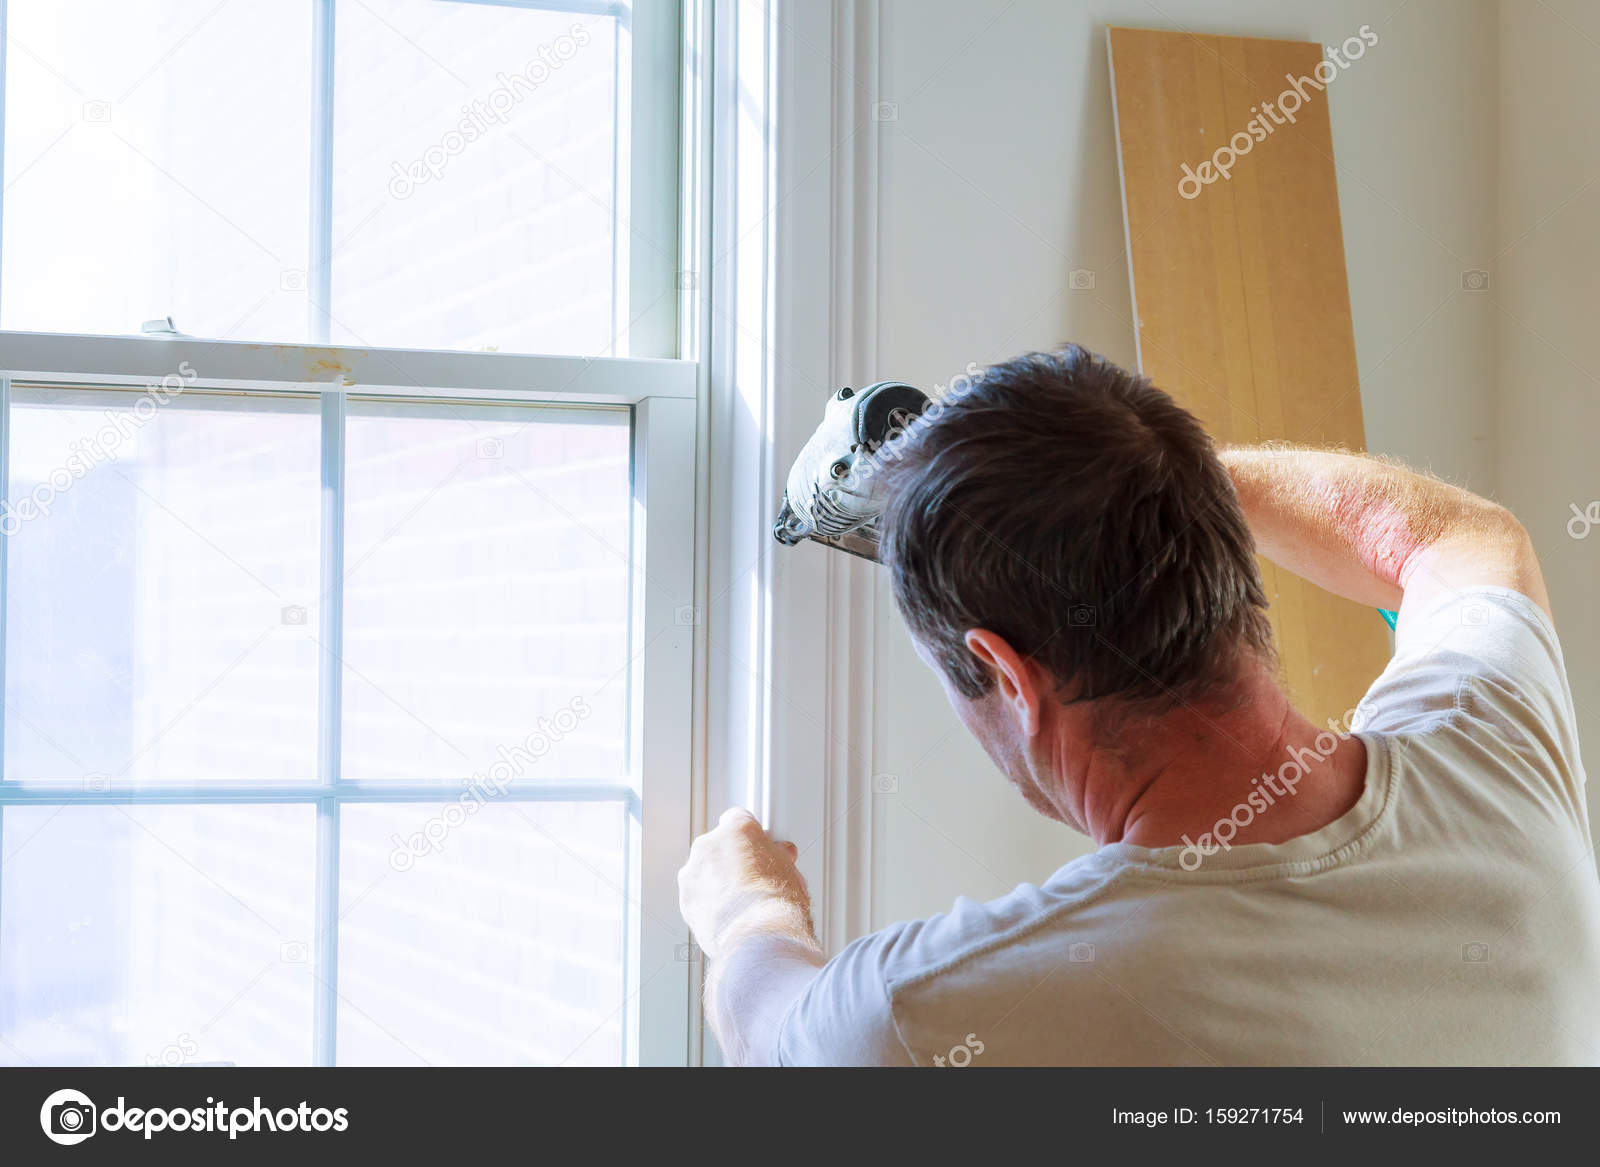 window framing trim cottage style window carpenter using nail gun to moldings on windows framing trim with the warning that all power tools have them shown illustrating safety concept photo trim